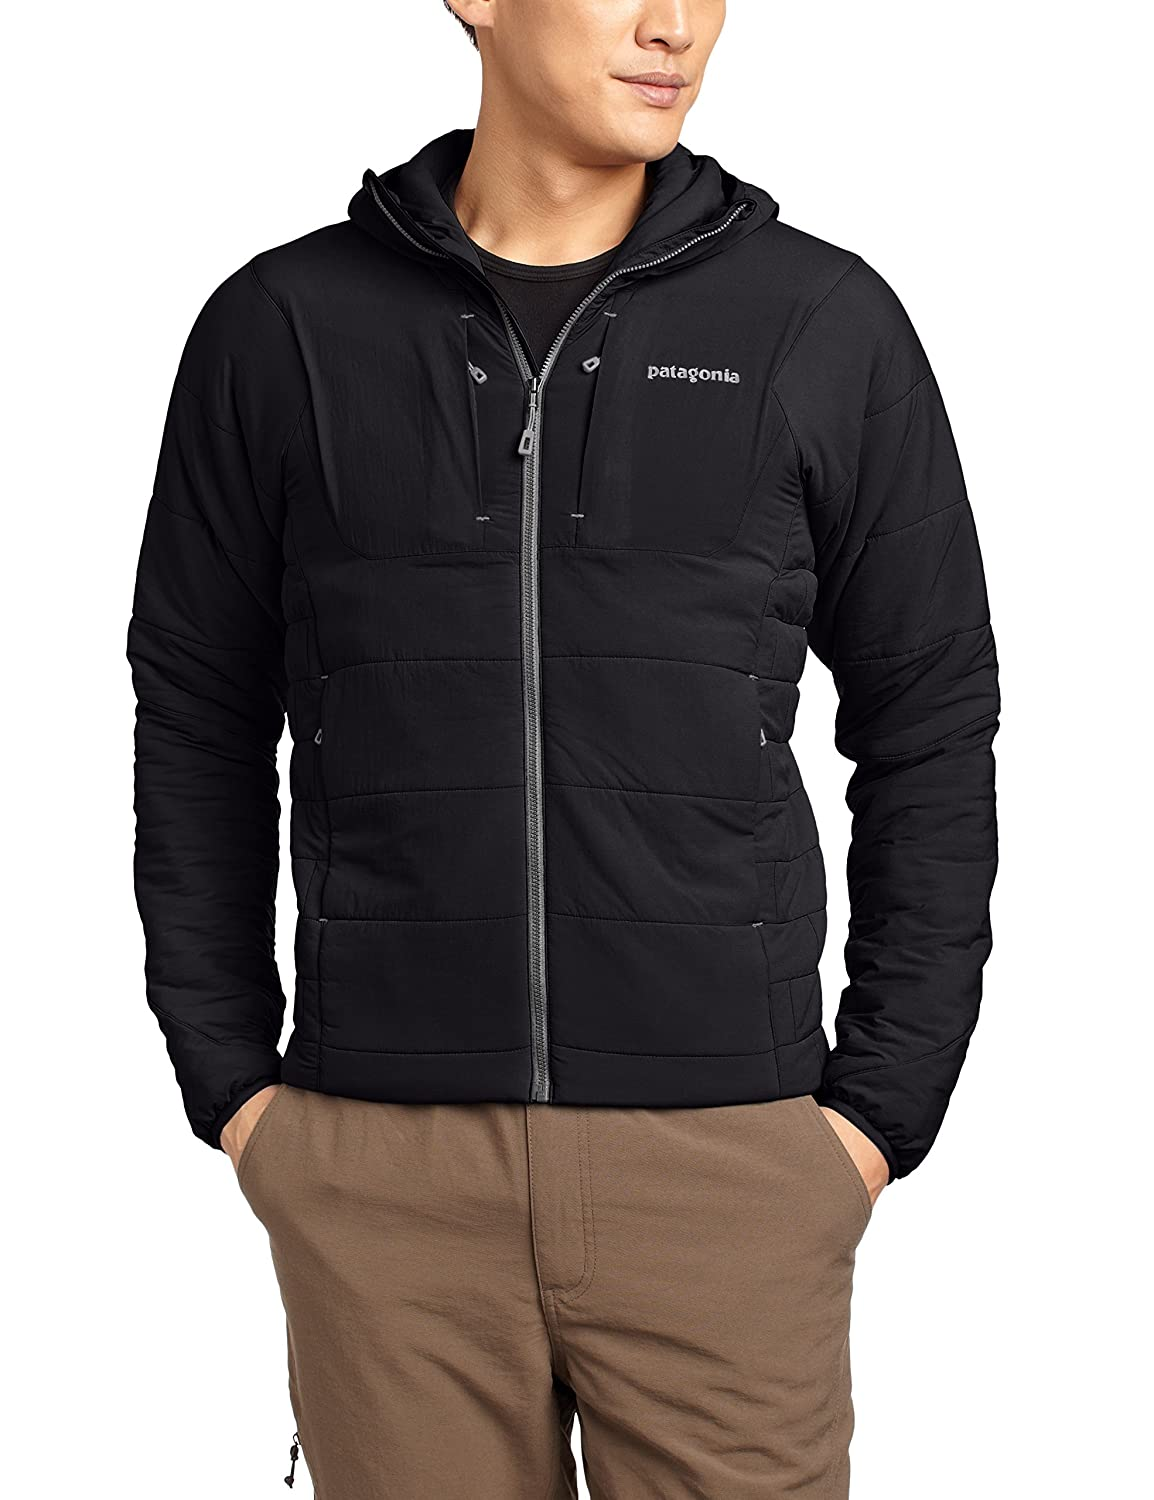 Patagonia Nano-Air Hooded Jacket – Black günstig online kaufen